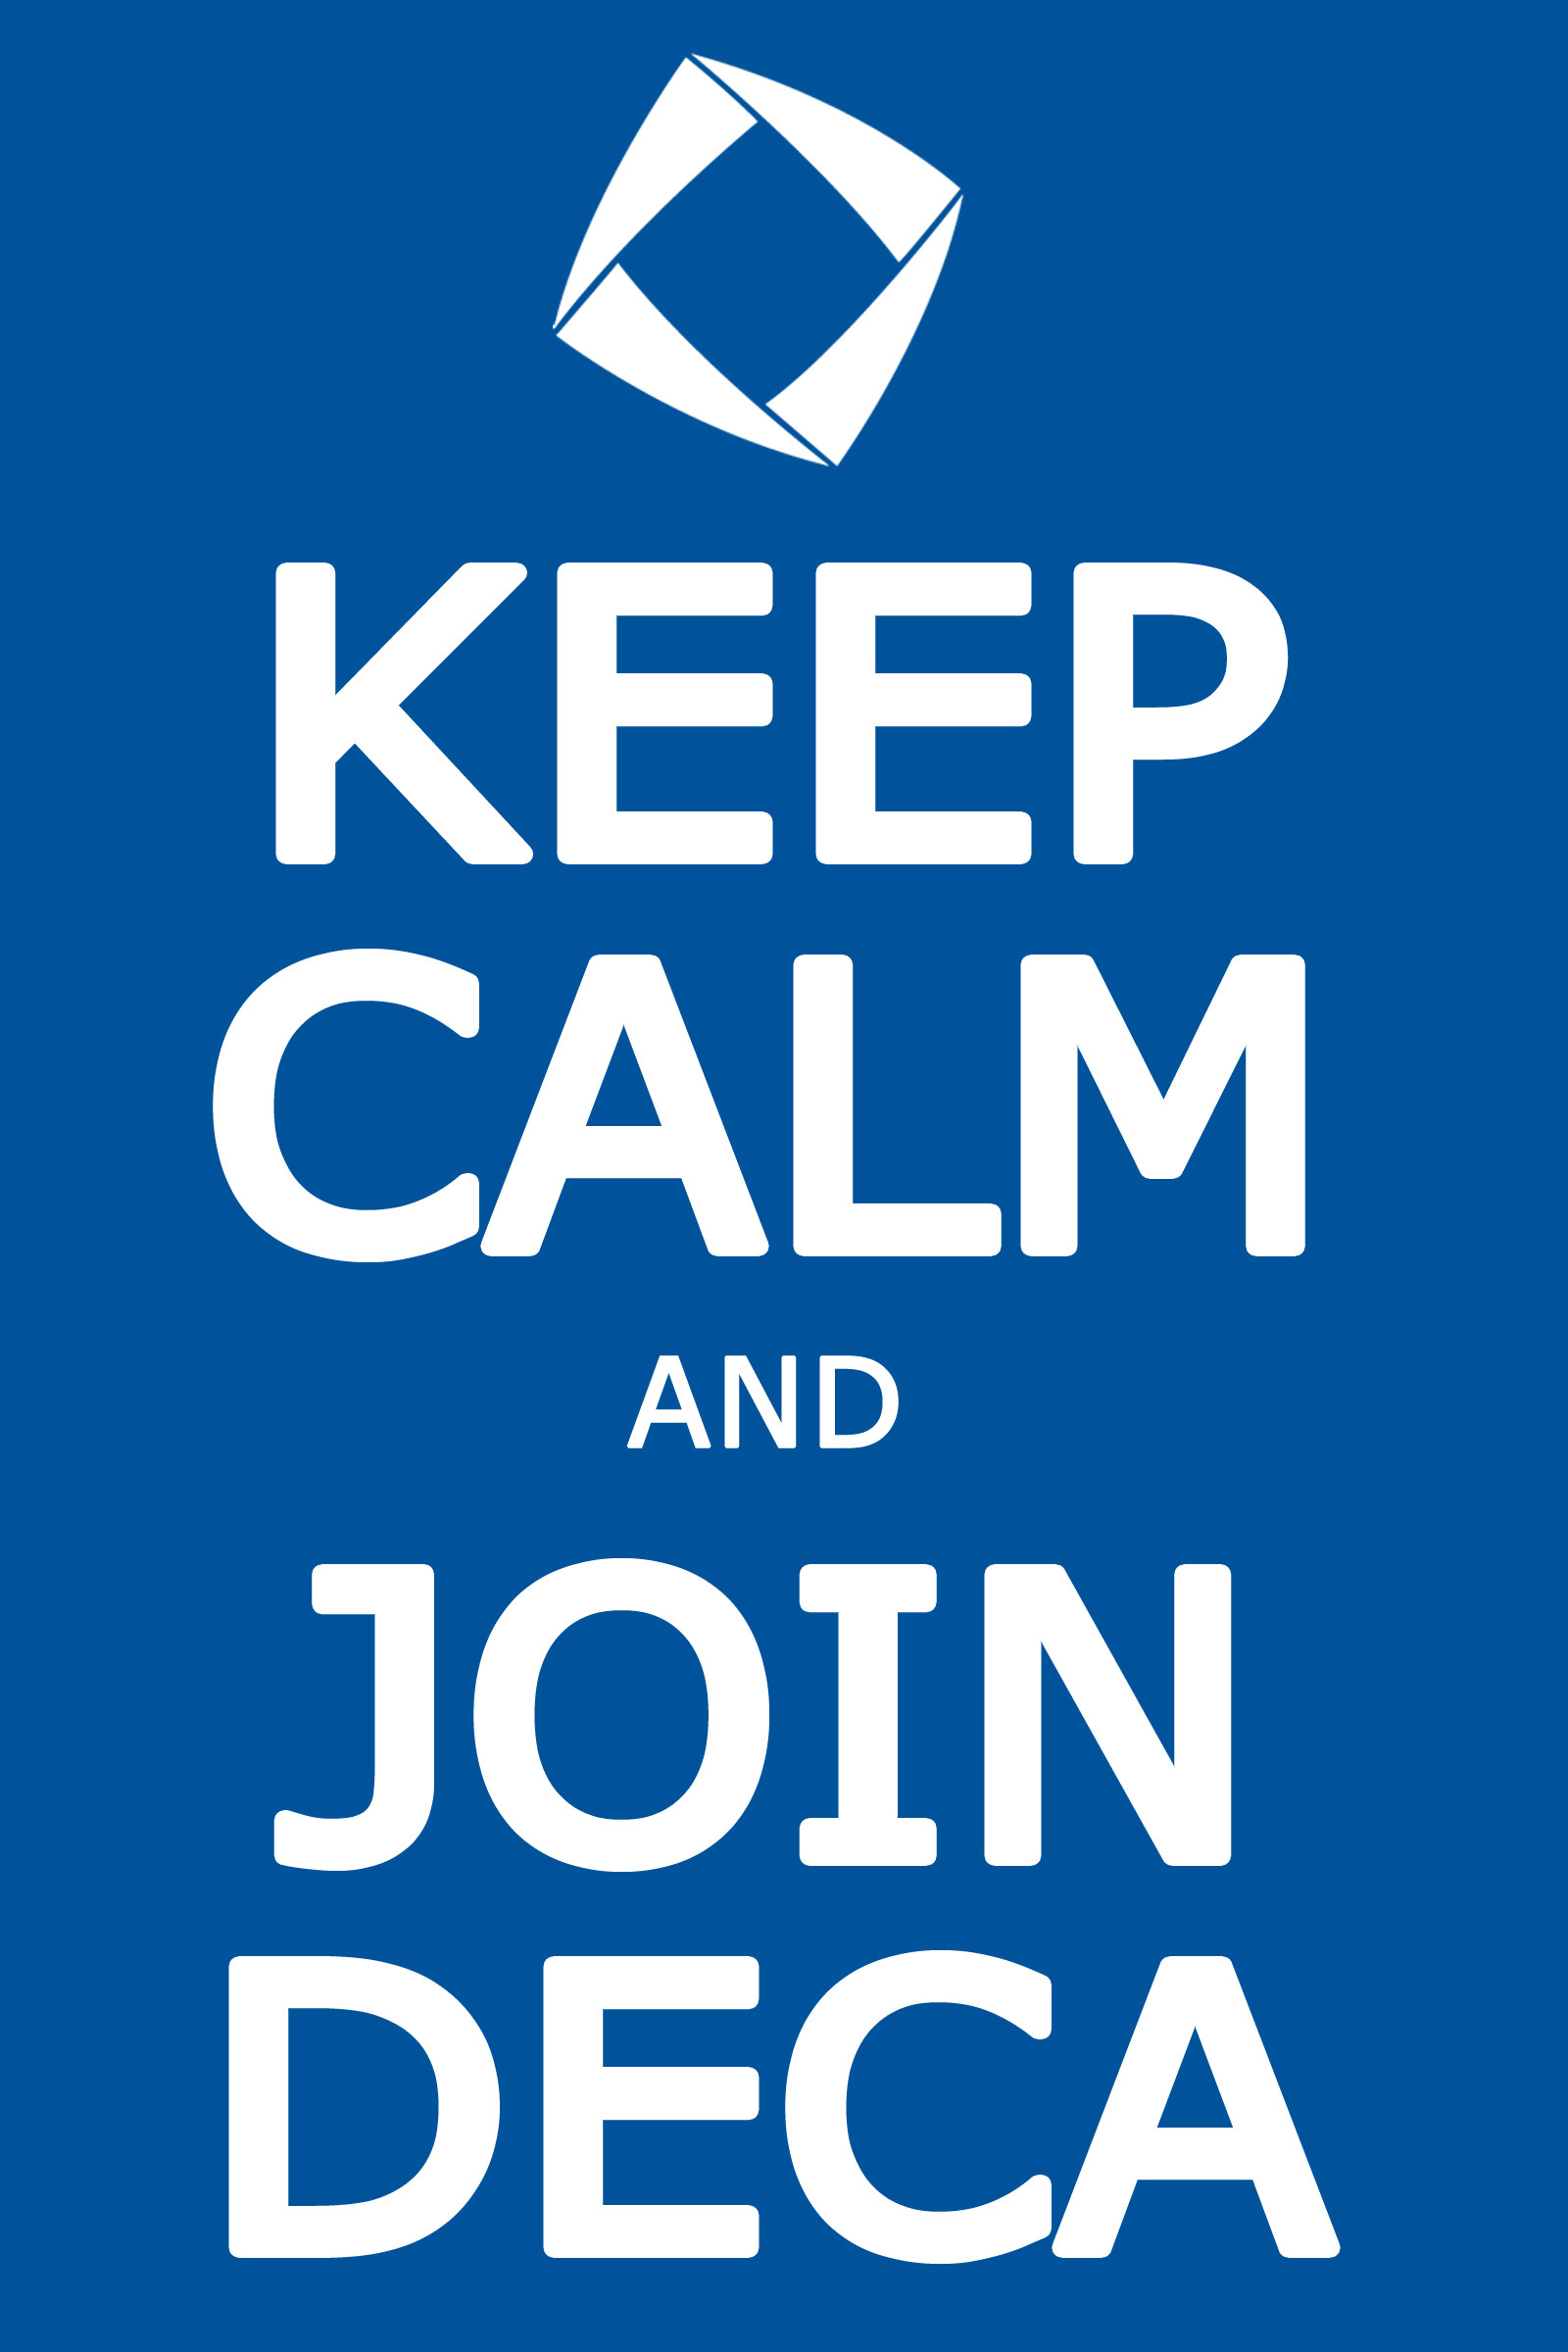 Keep Calm and Join #DECA